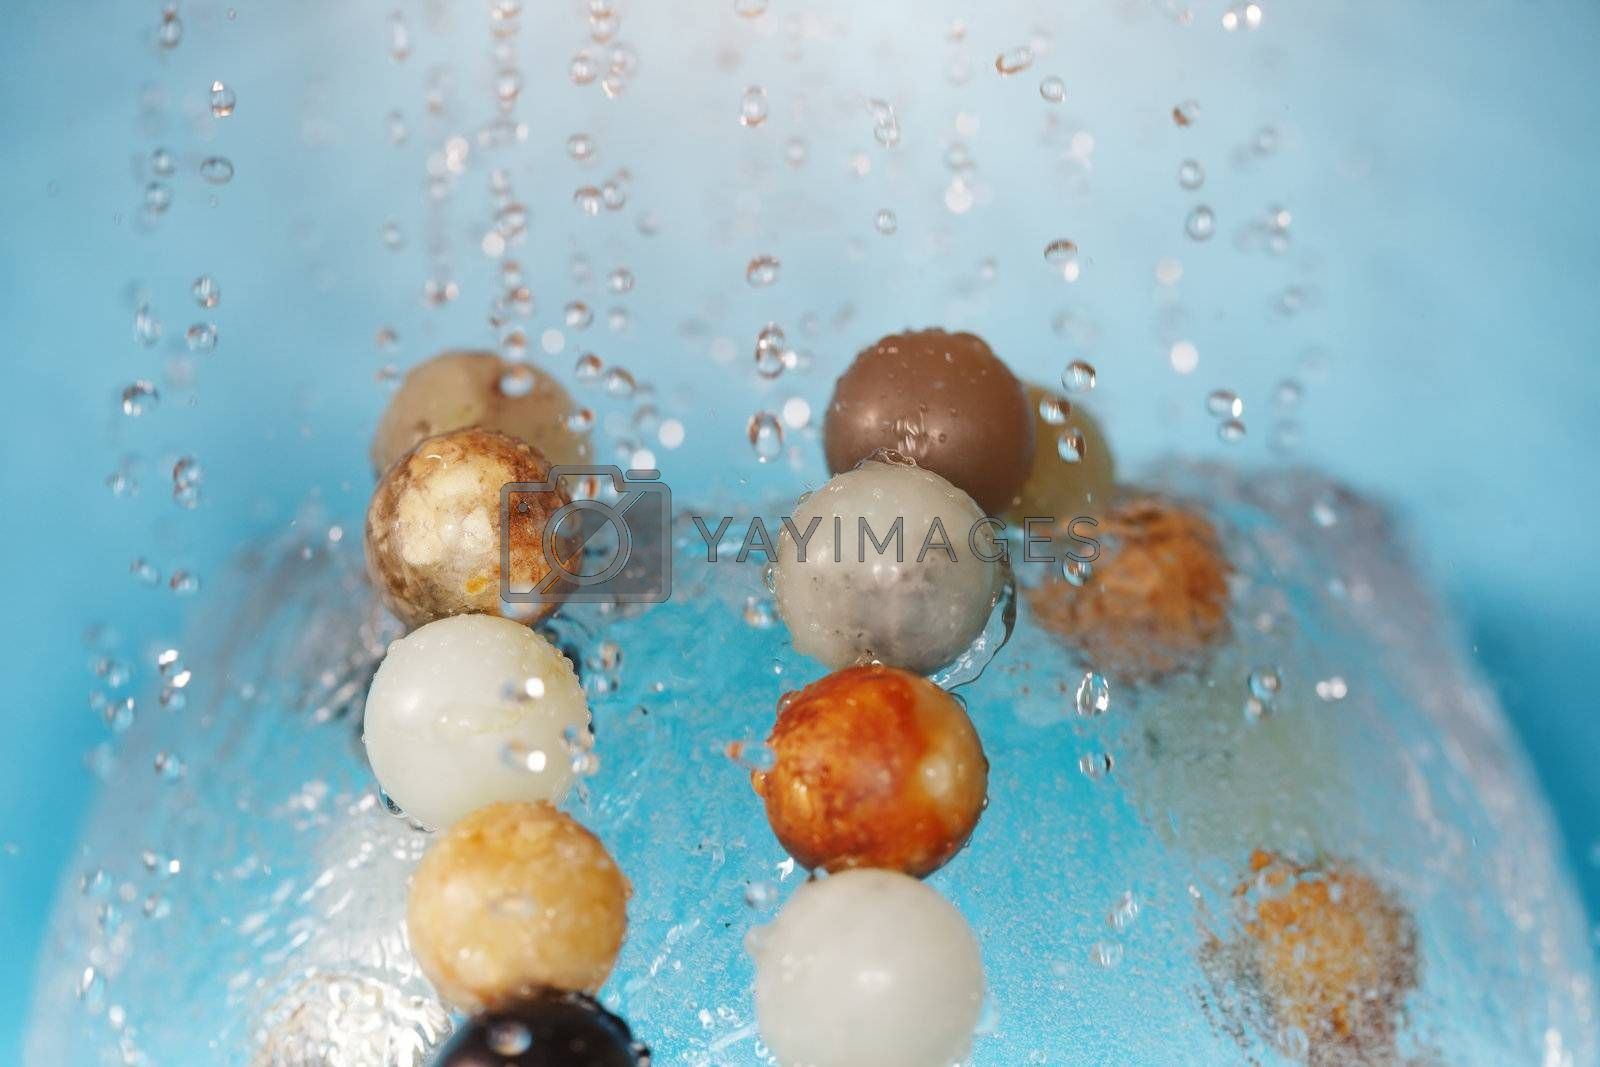 Extremely close-up macro photo of chaplet under the falling water drops. Shallow depth of field for natural view